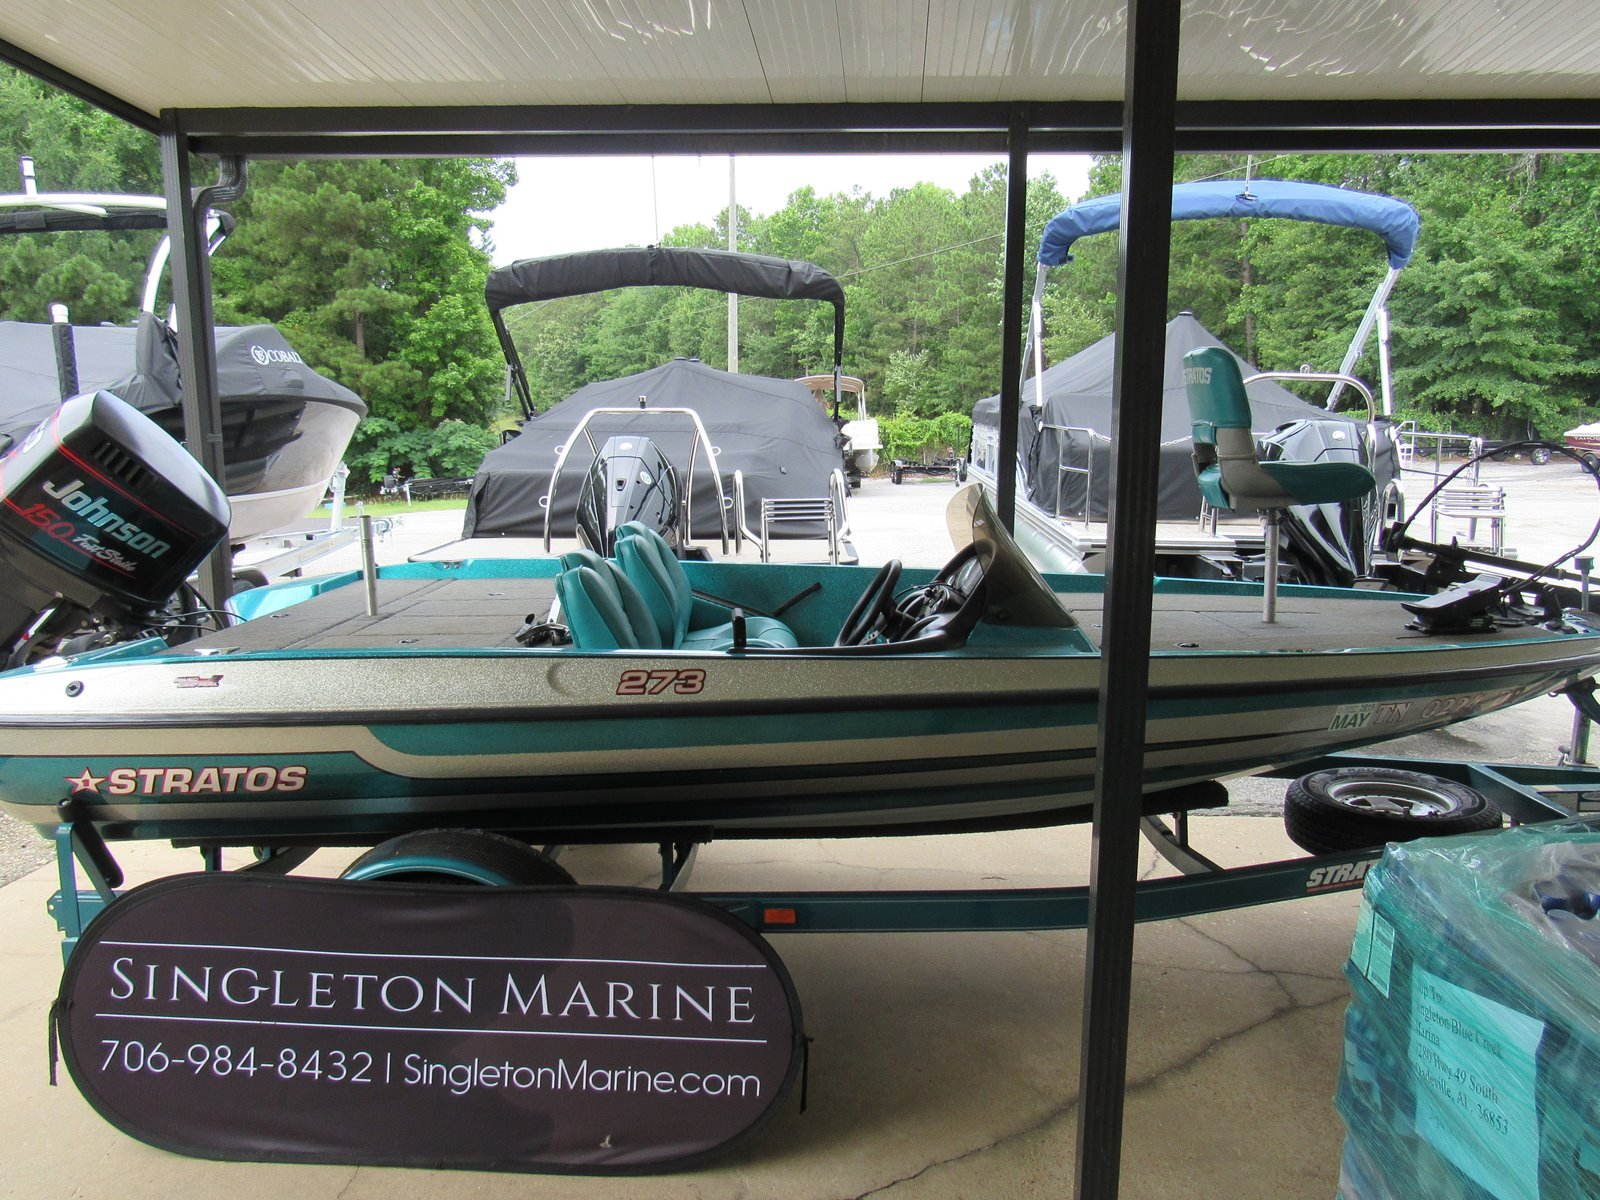 Stratos boats for sale - Boat Trader